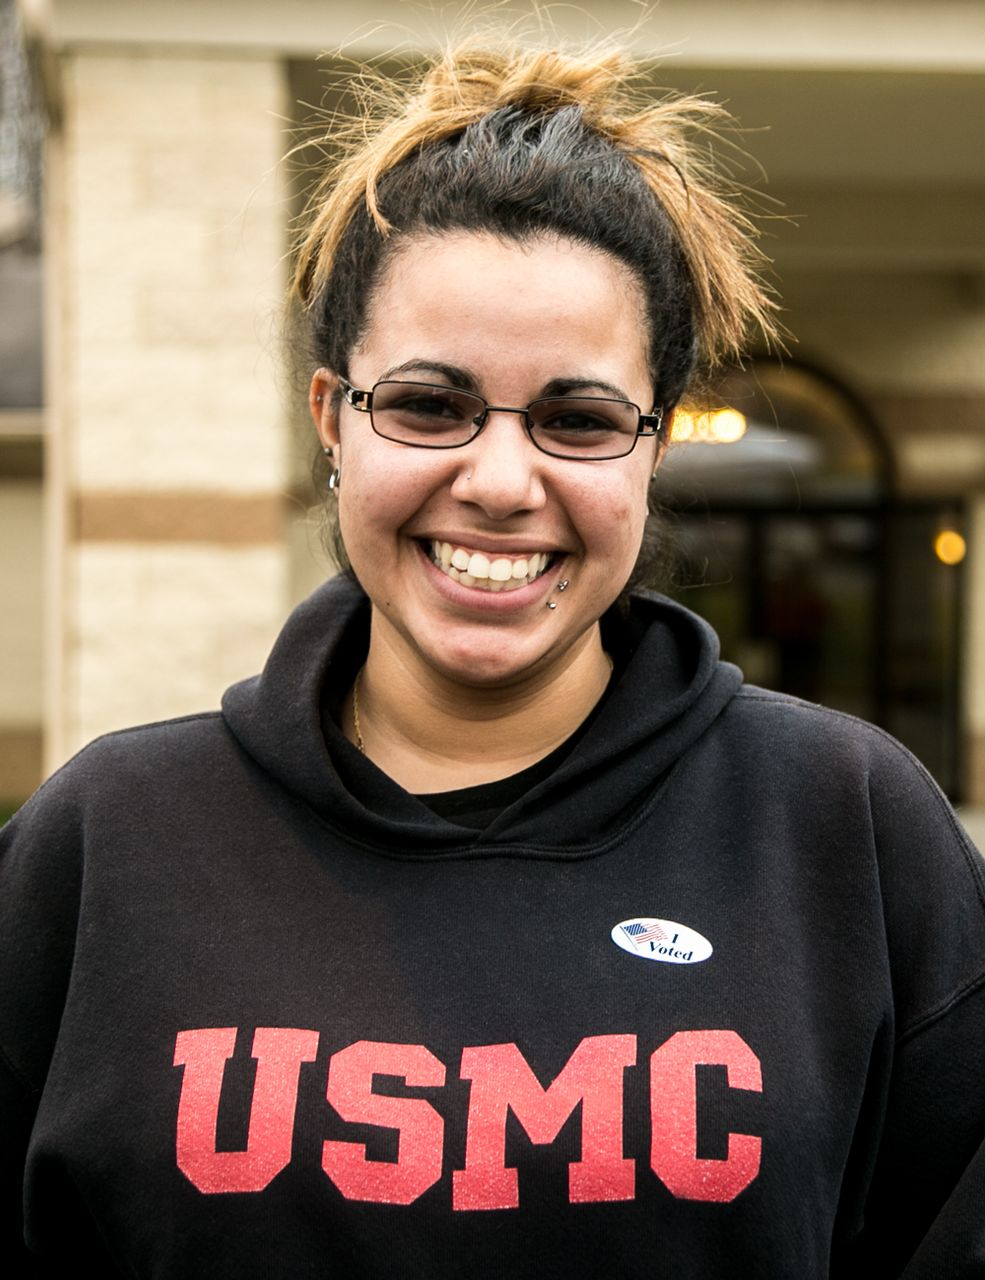 Youngstown voter Idalia